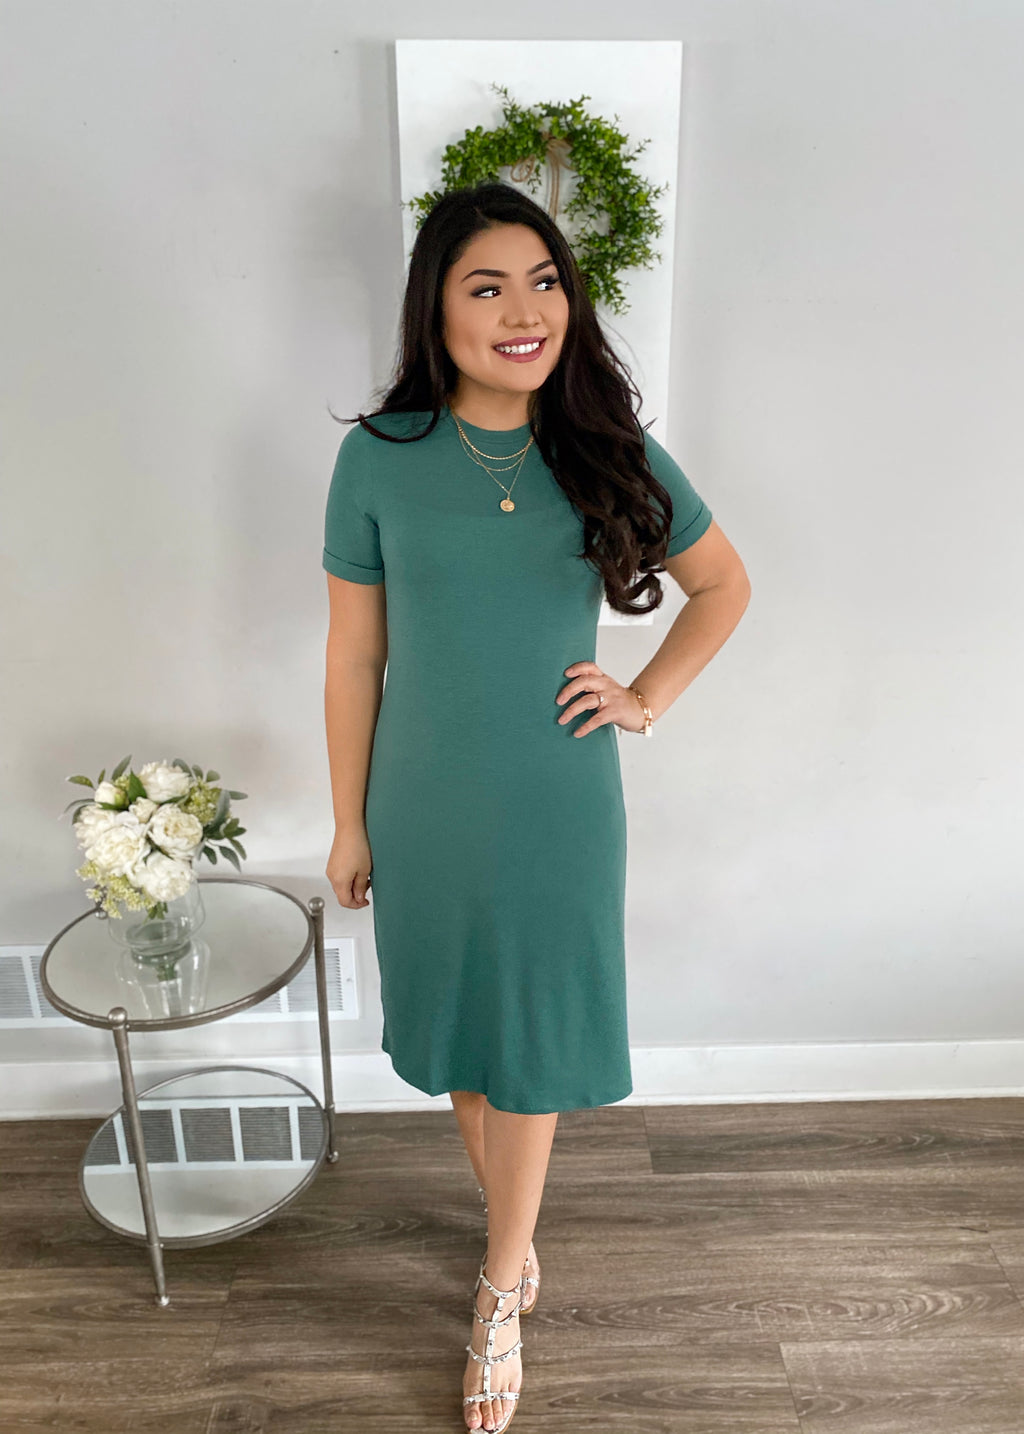 Brinn Everyday Tee Dress - Teal